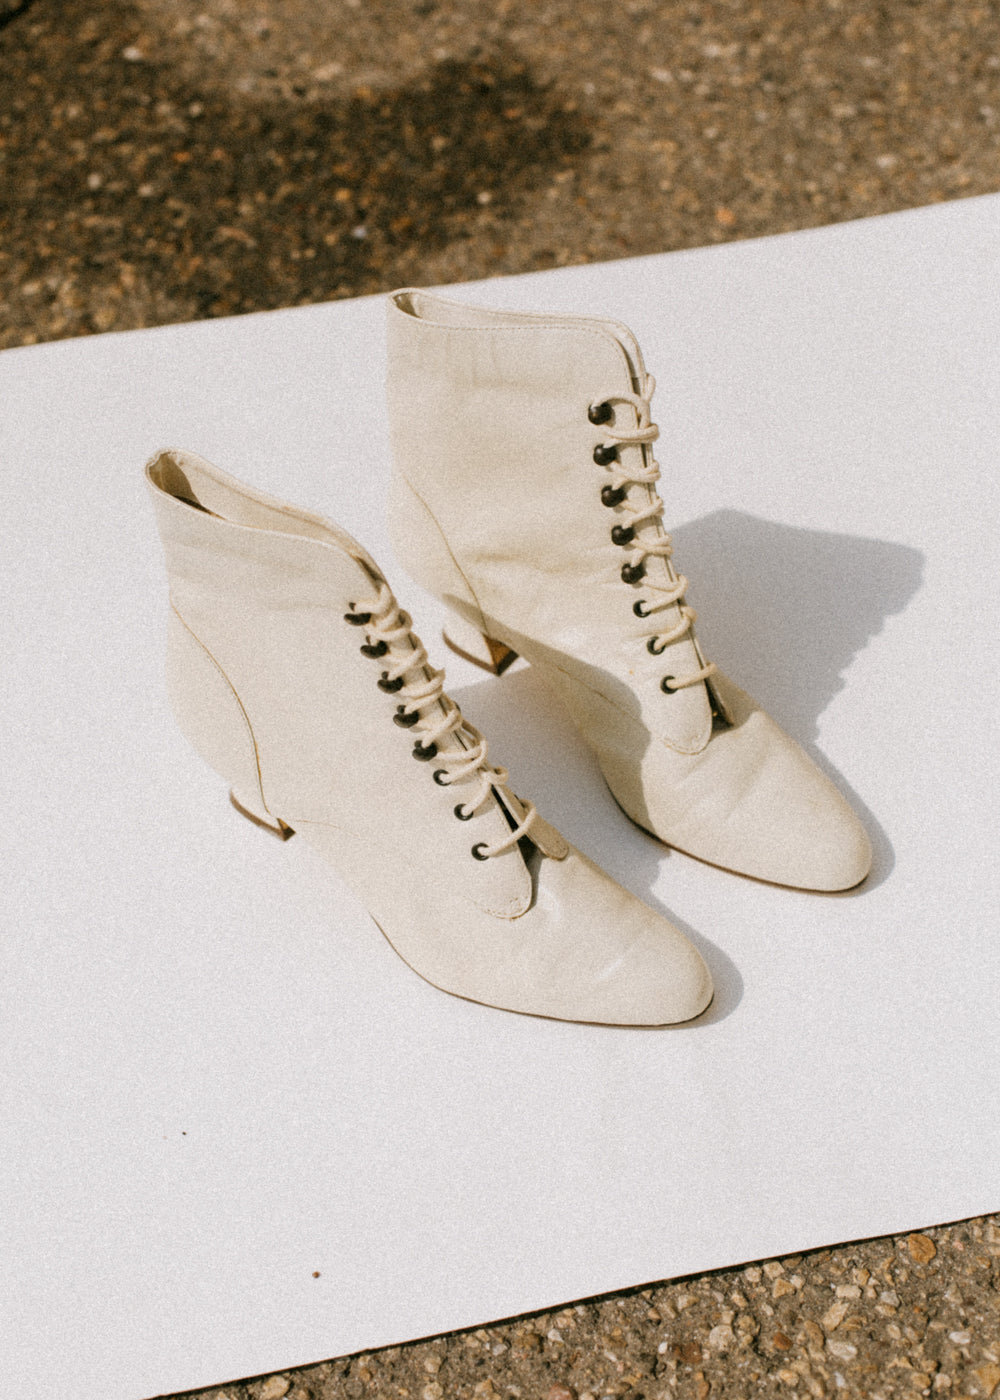 Vintage Lace-Up Booties